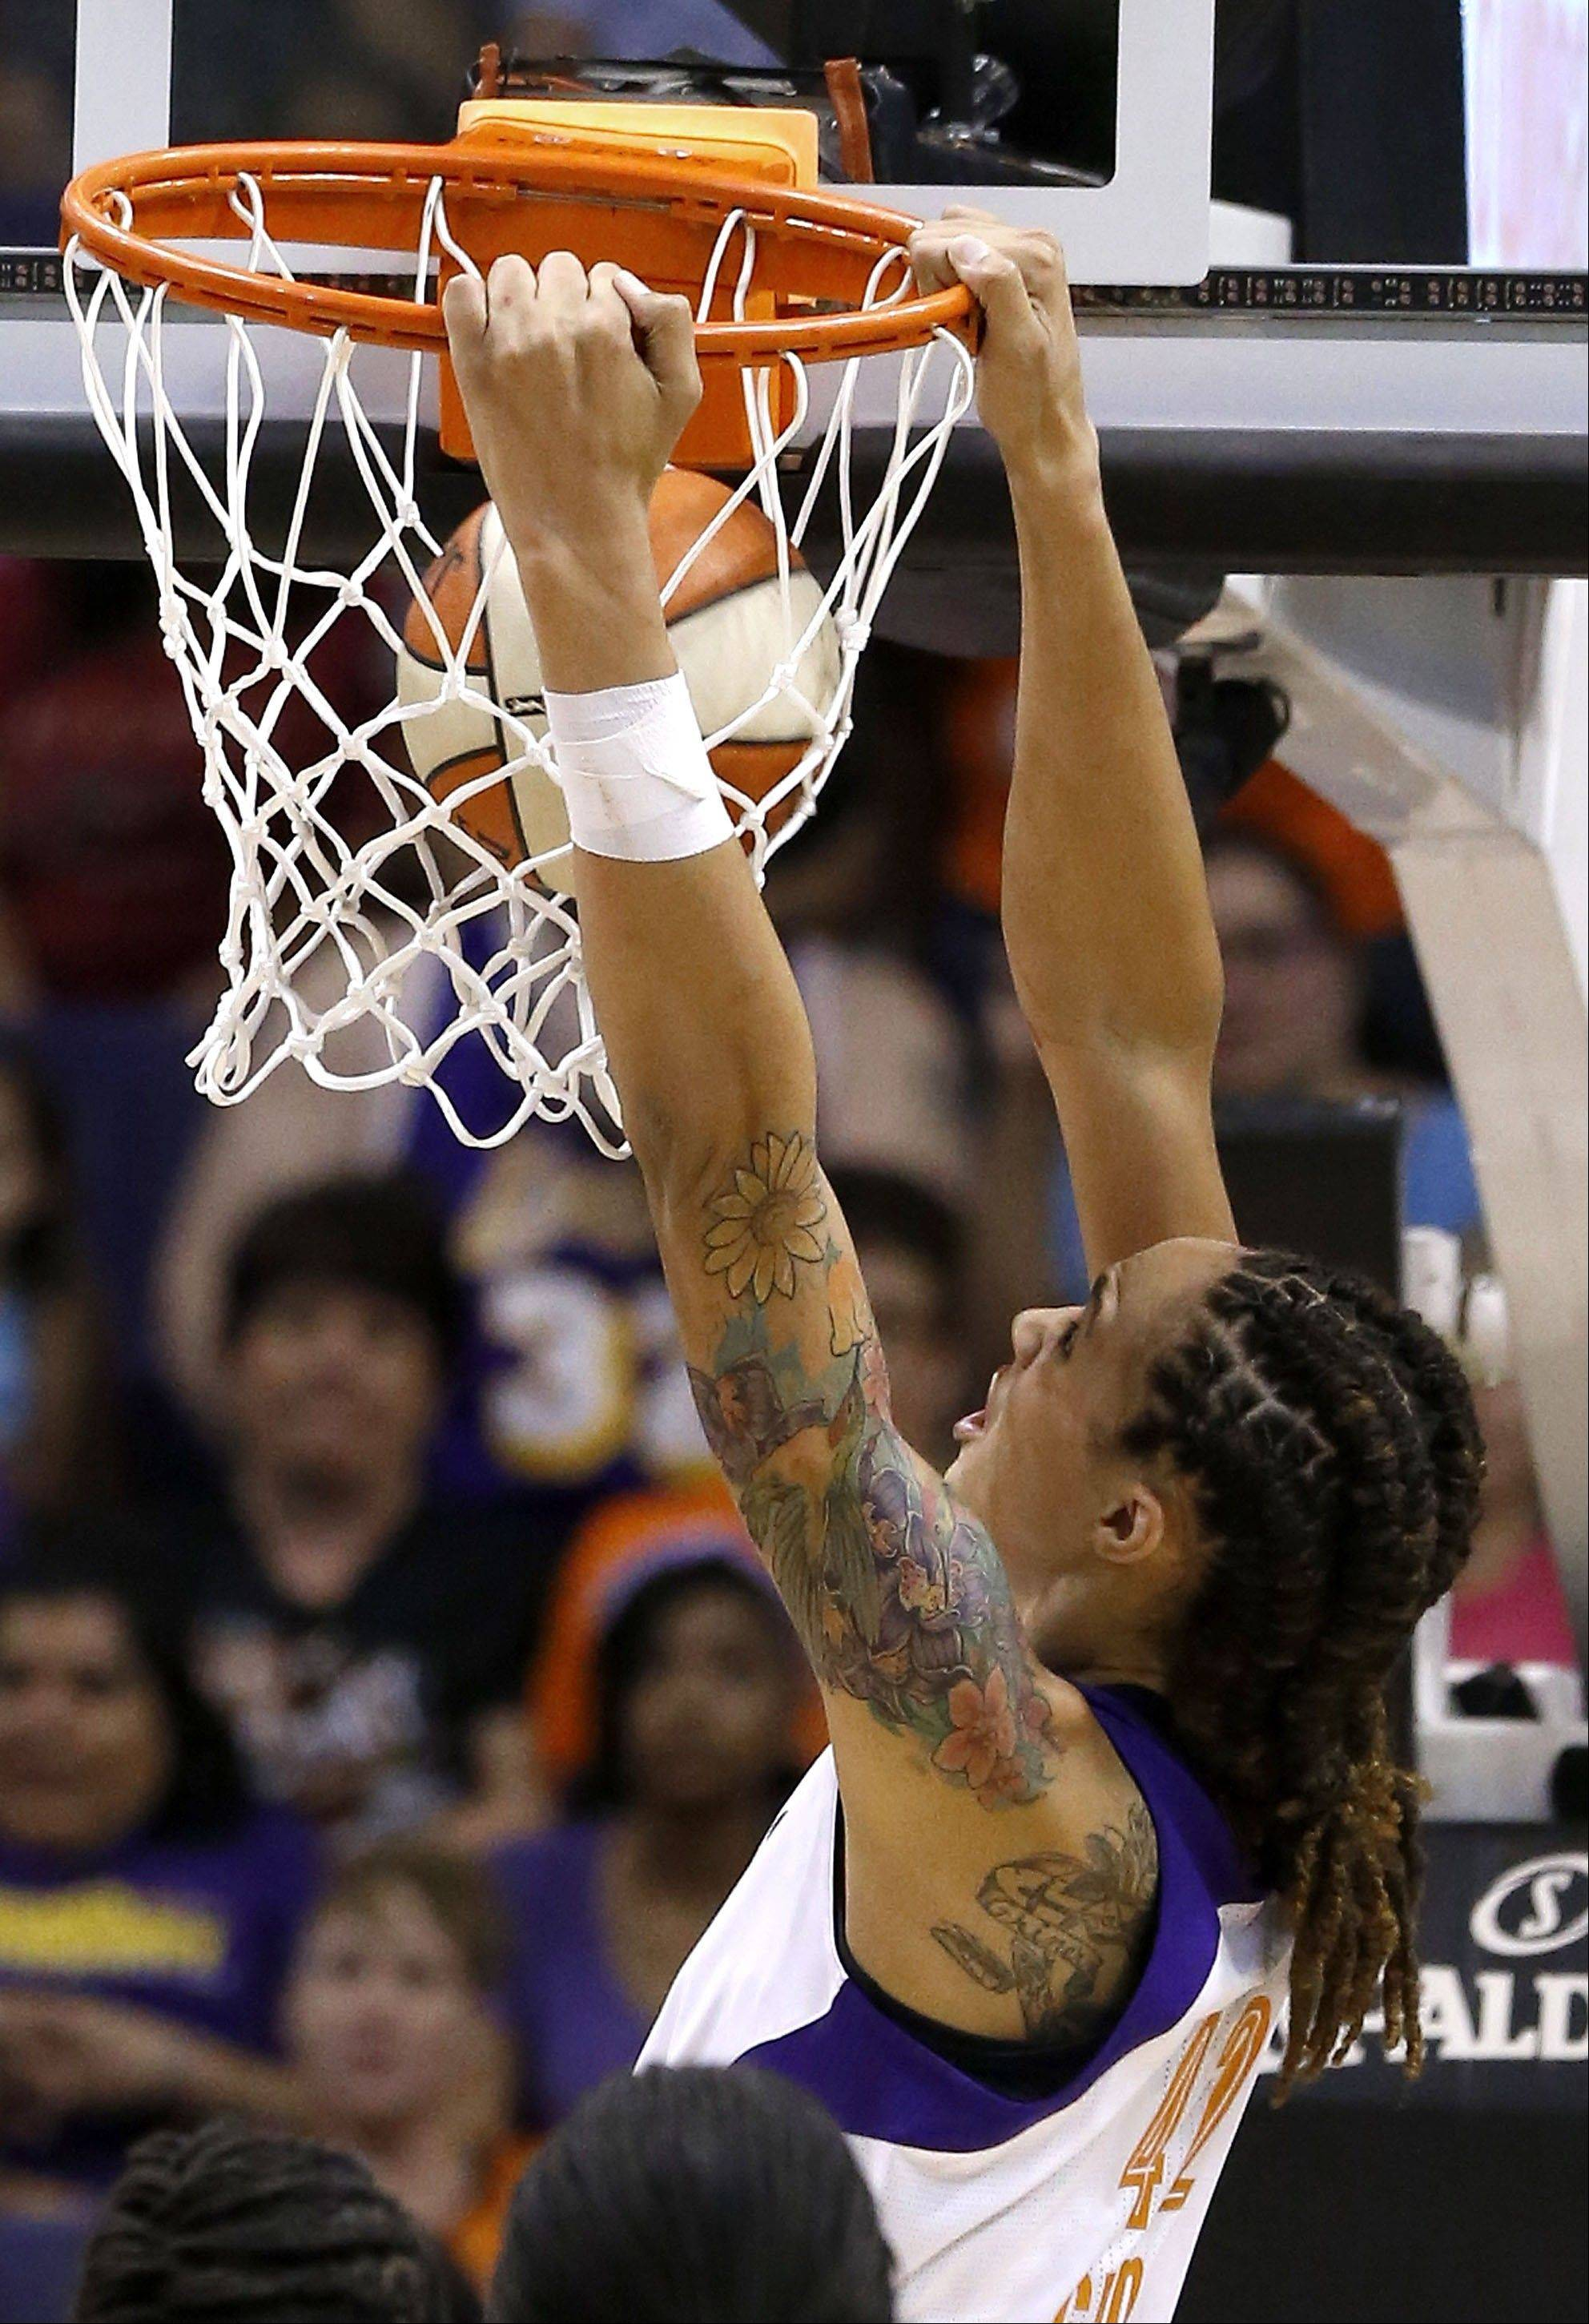 Phoenix Mercury's Brittney Griner goes in for a break away dunk against the Chicago Sky on Monday. Griner had two dunks in the 102-80 loss by the Mercury.